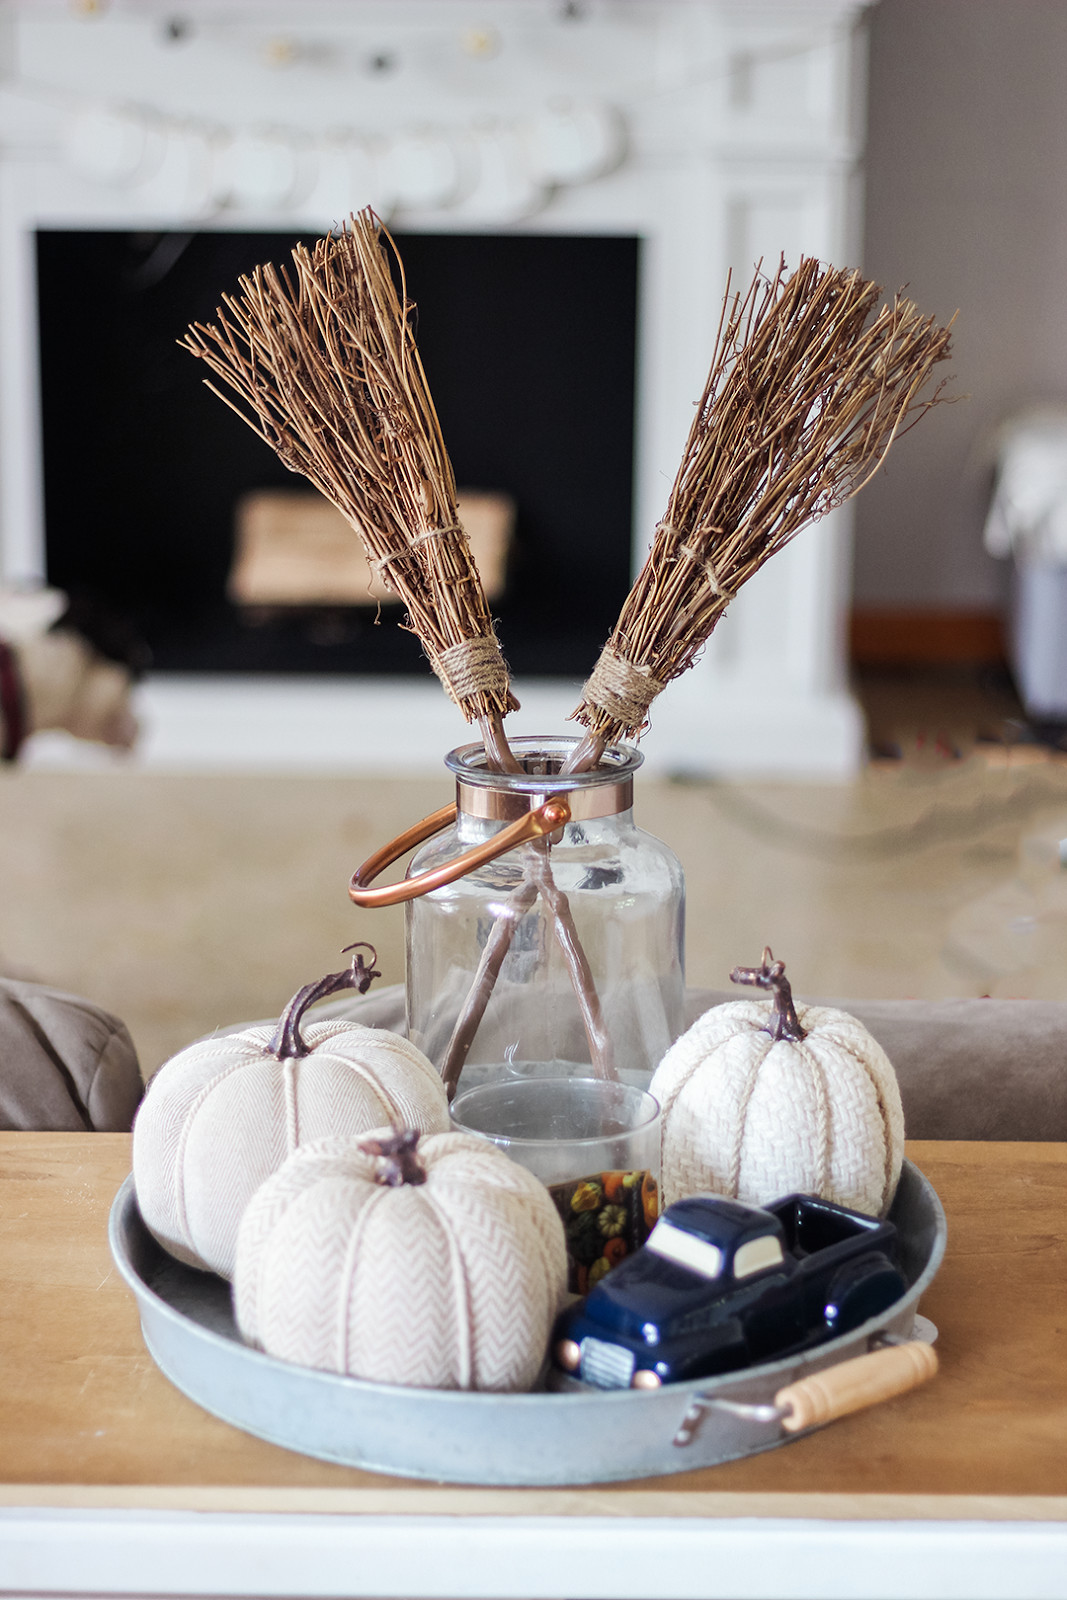 20 Wonderful Target Vase Filler 2021 free download target vase filler of fall decor faves from bulleyes playground at target xo noelle with so go ahead and tell your hubs that youre heading out to target for milk and get your shop on just do